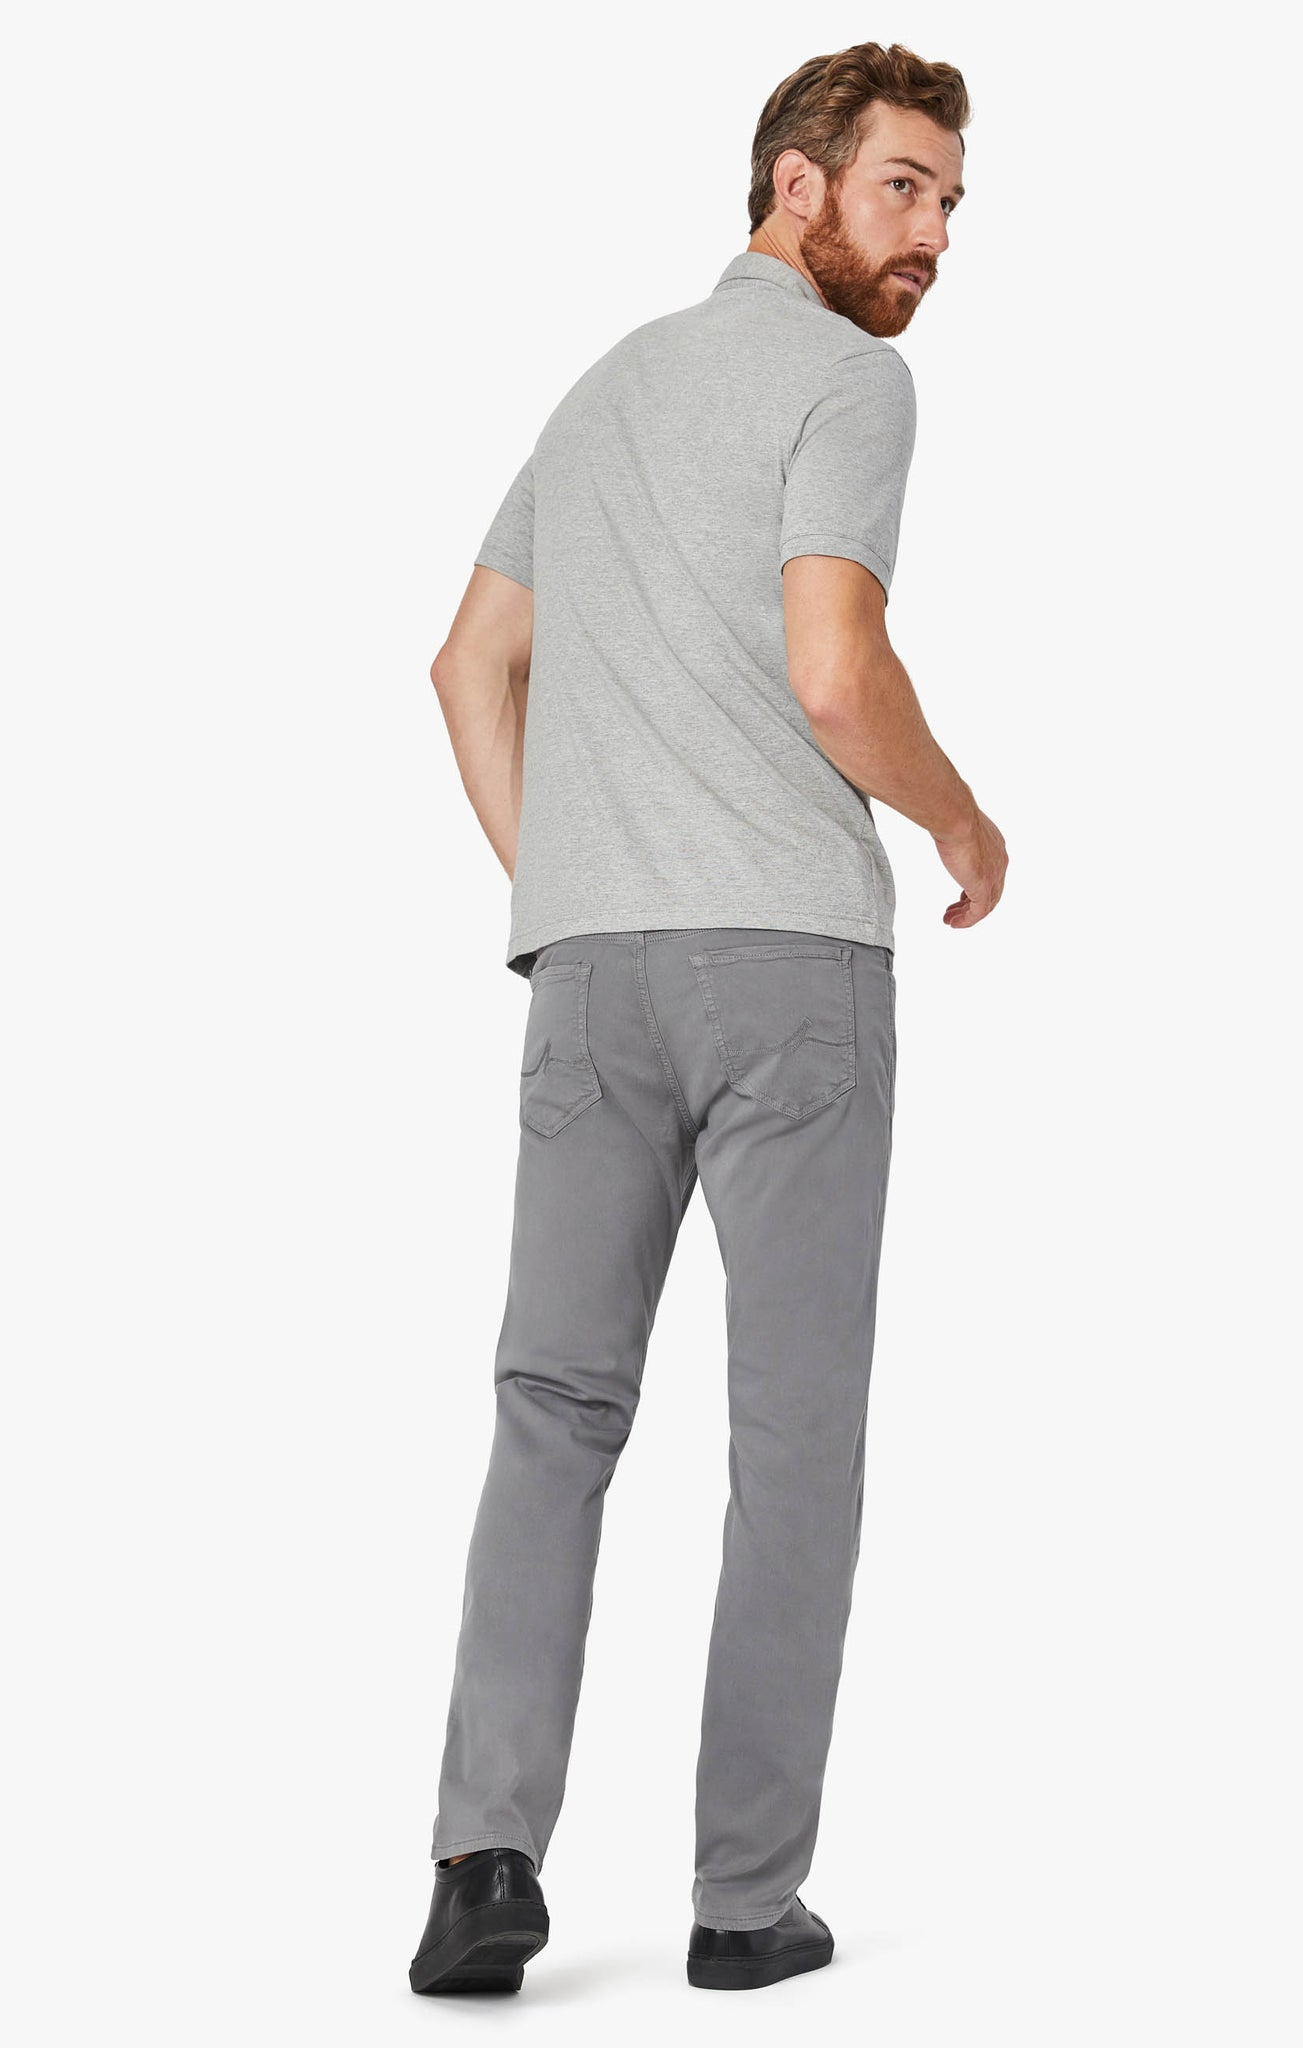 Courage Straight Leg Pants in Shark Twill